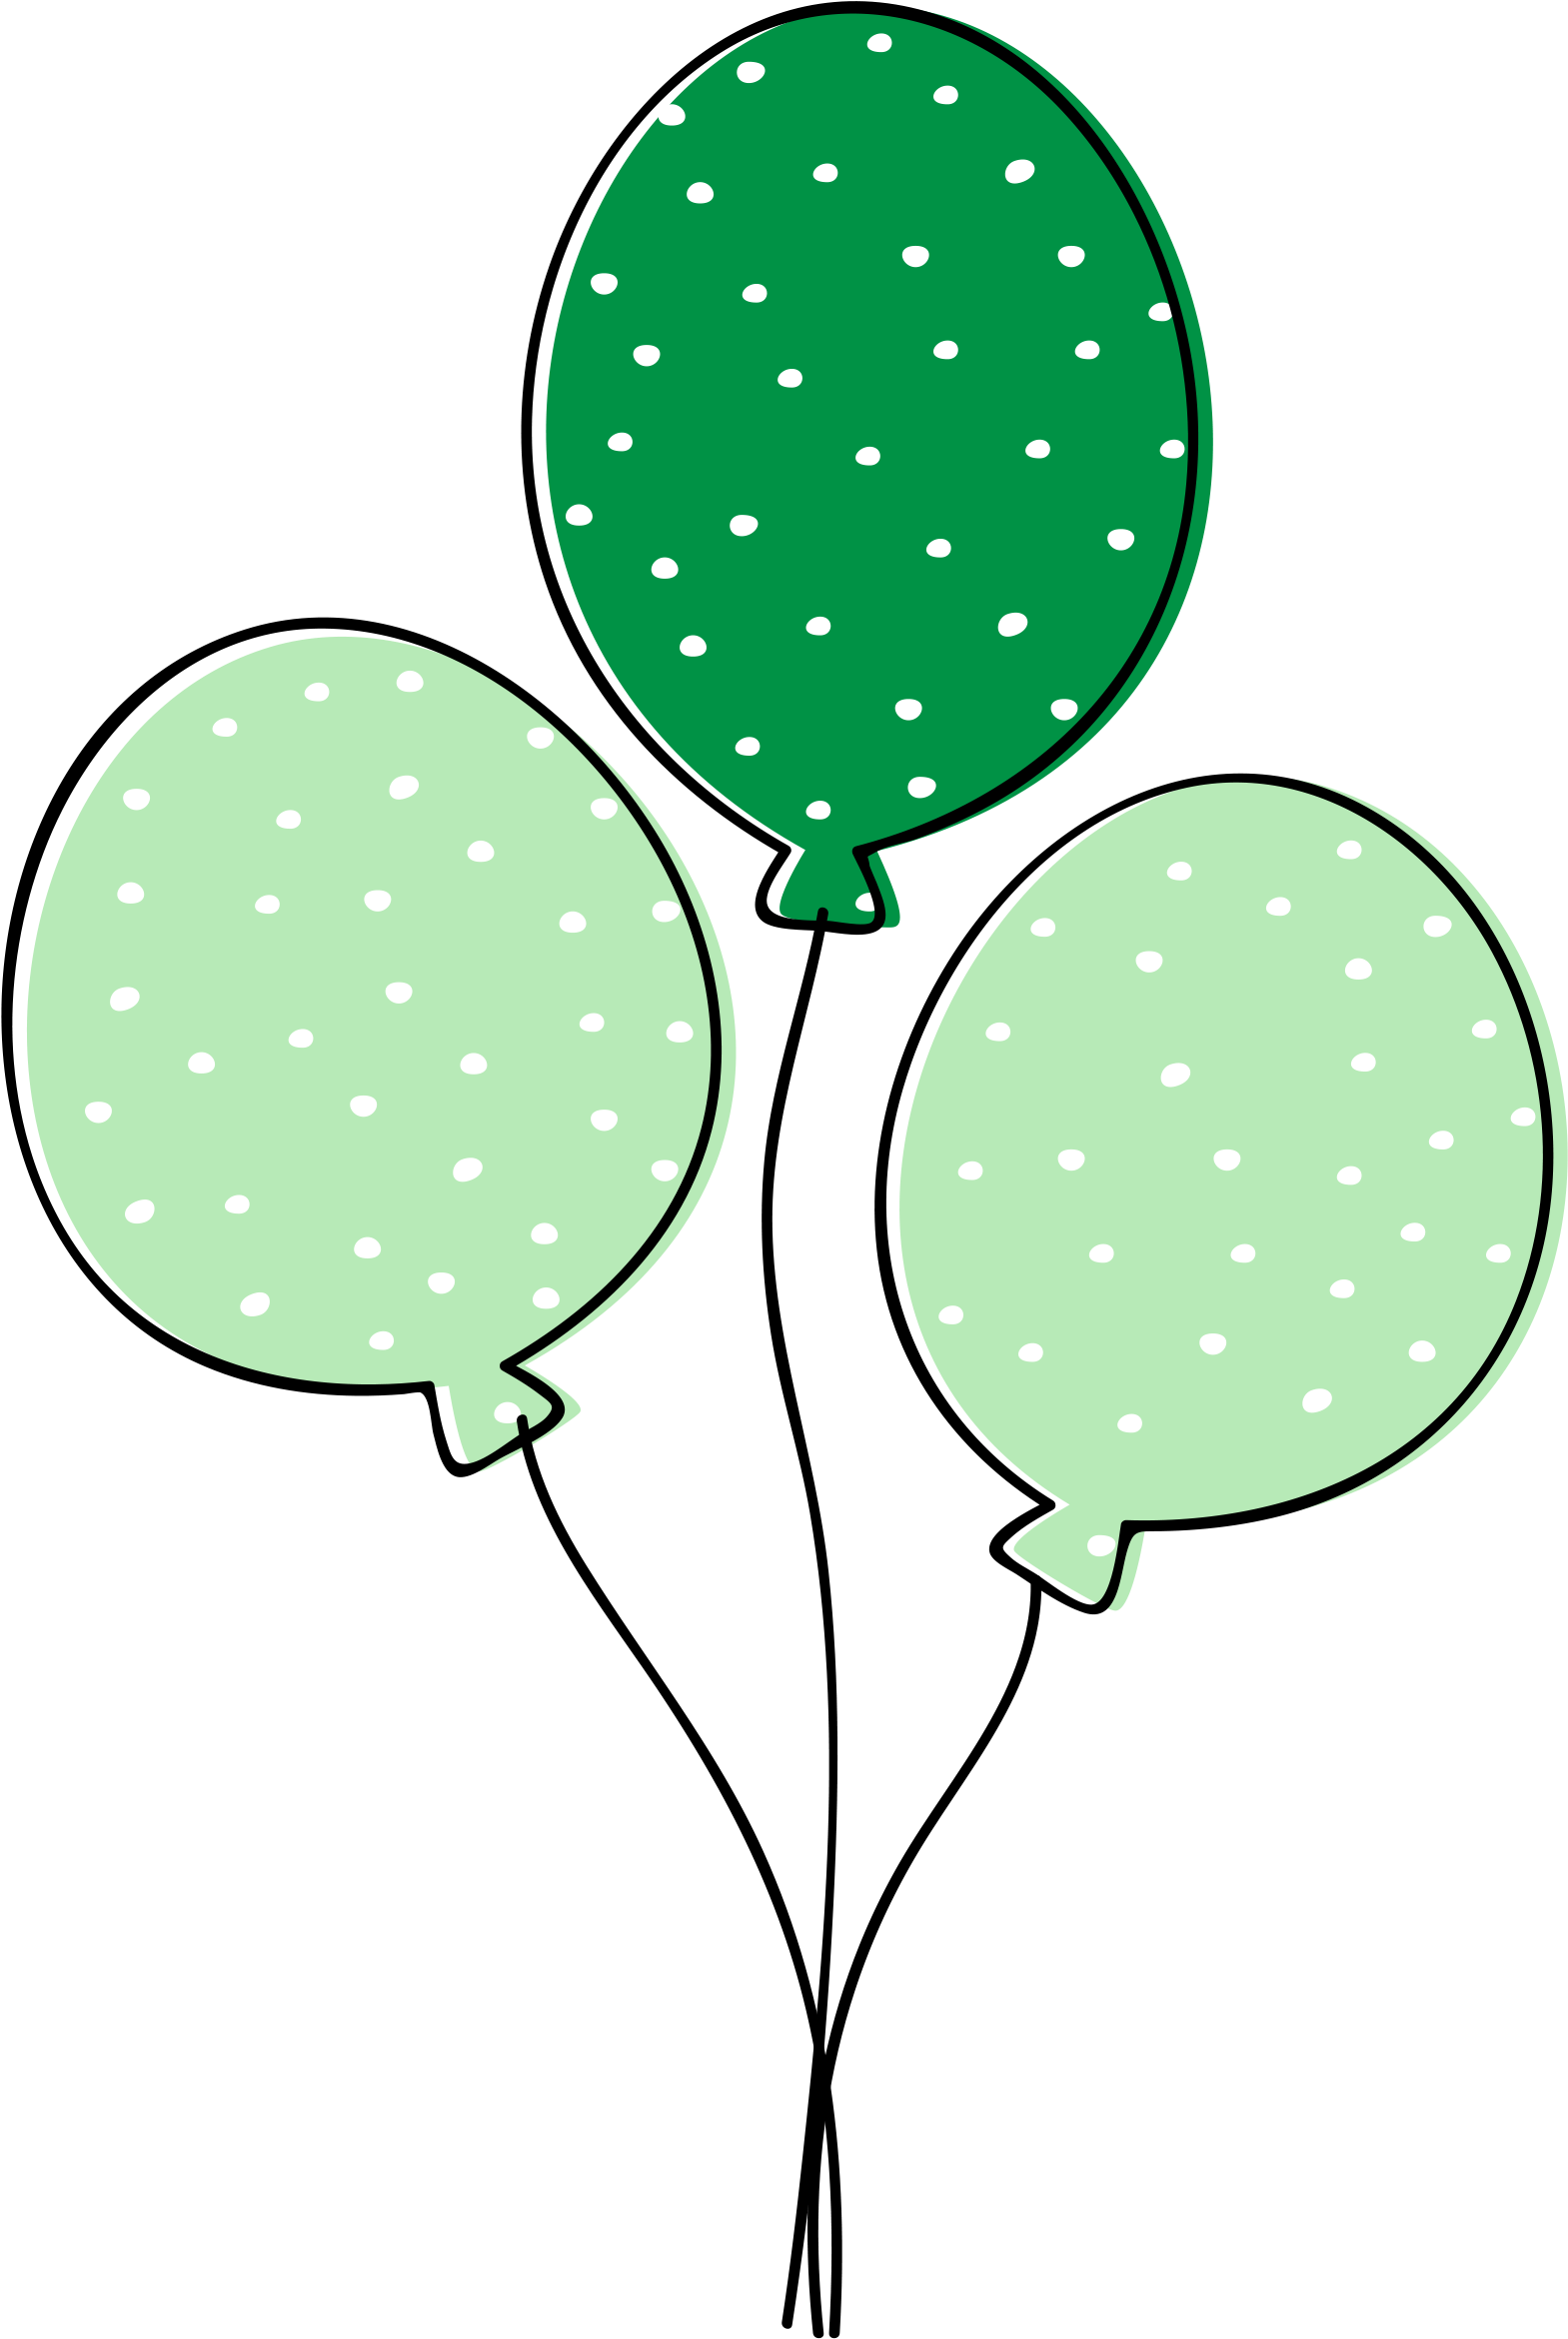 Balloons Clip Art - Balloon , Transparent Cartoon - Jing.fm